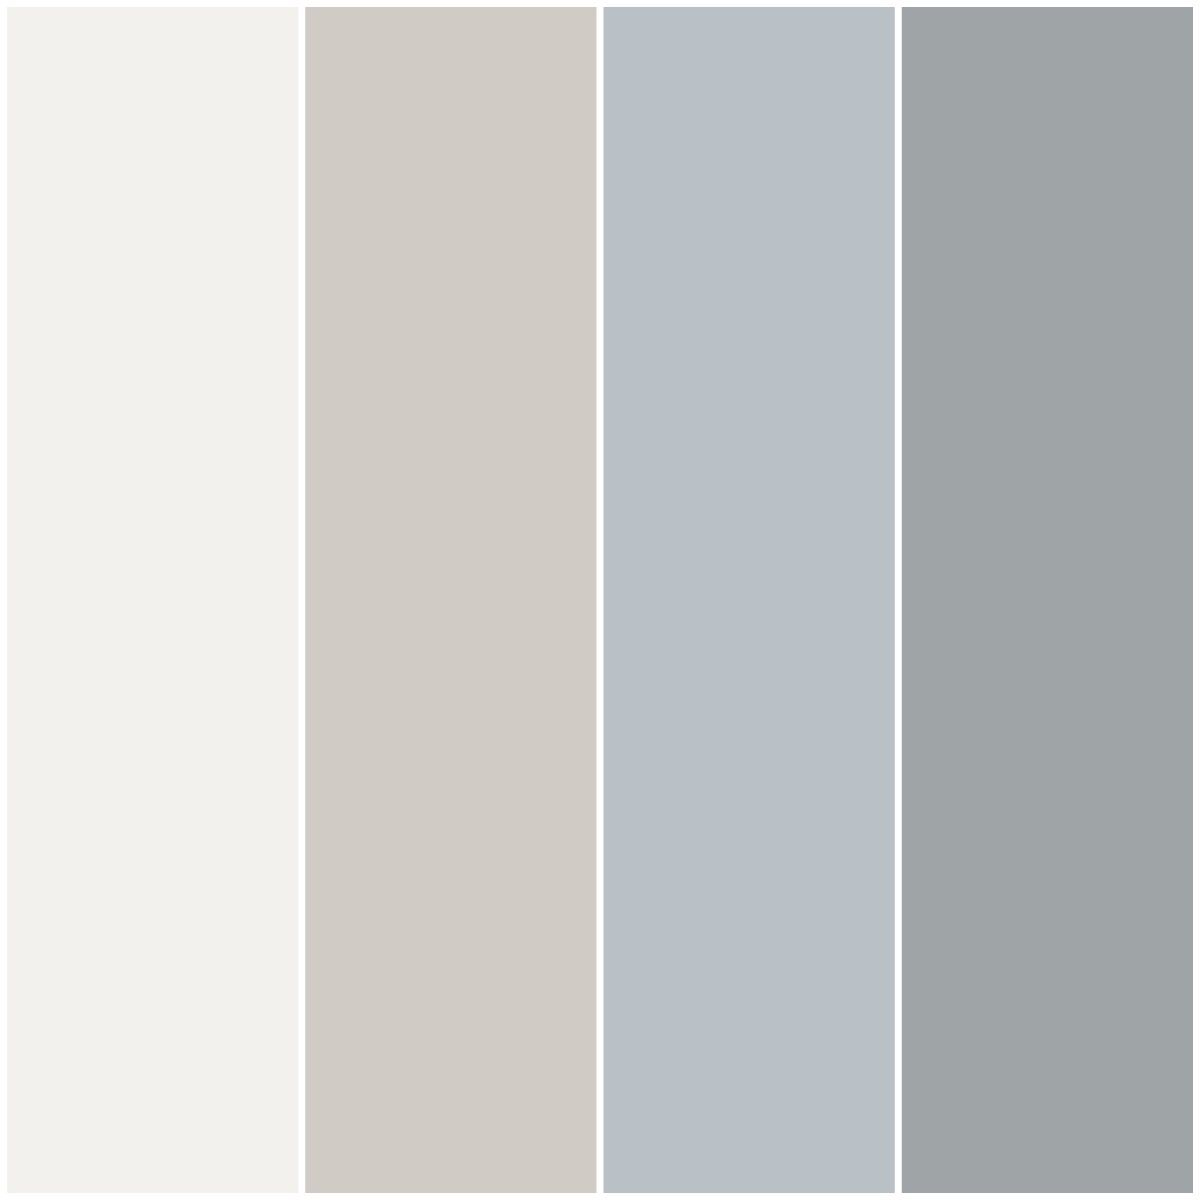 color palette i made for my house with behr paint in nano white